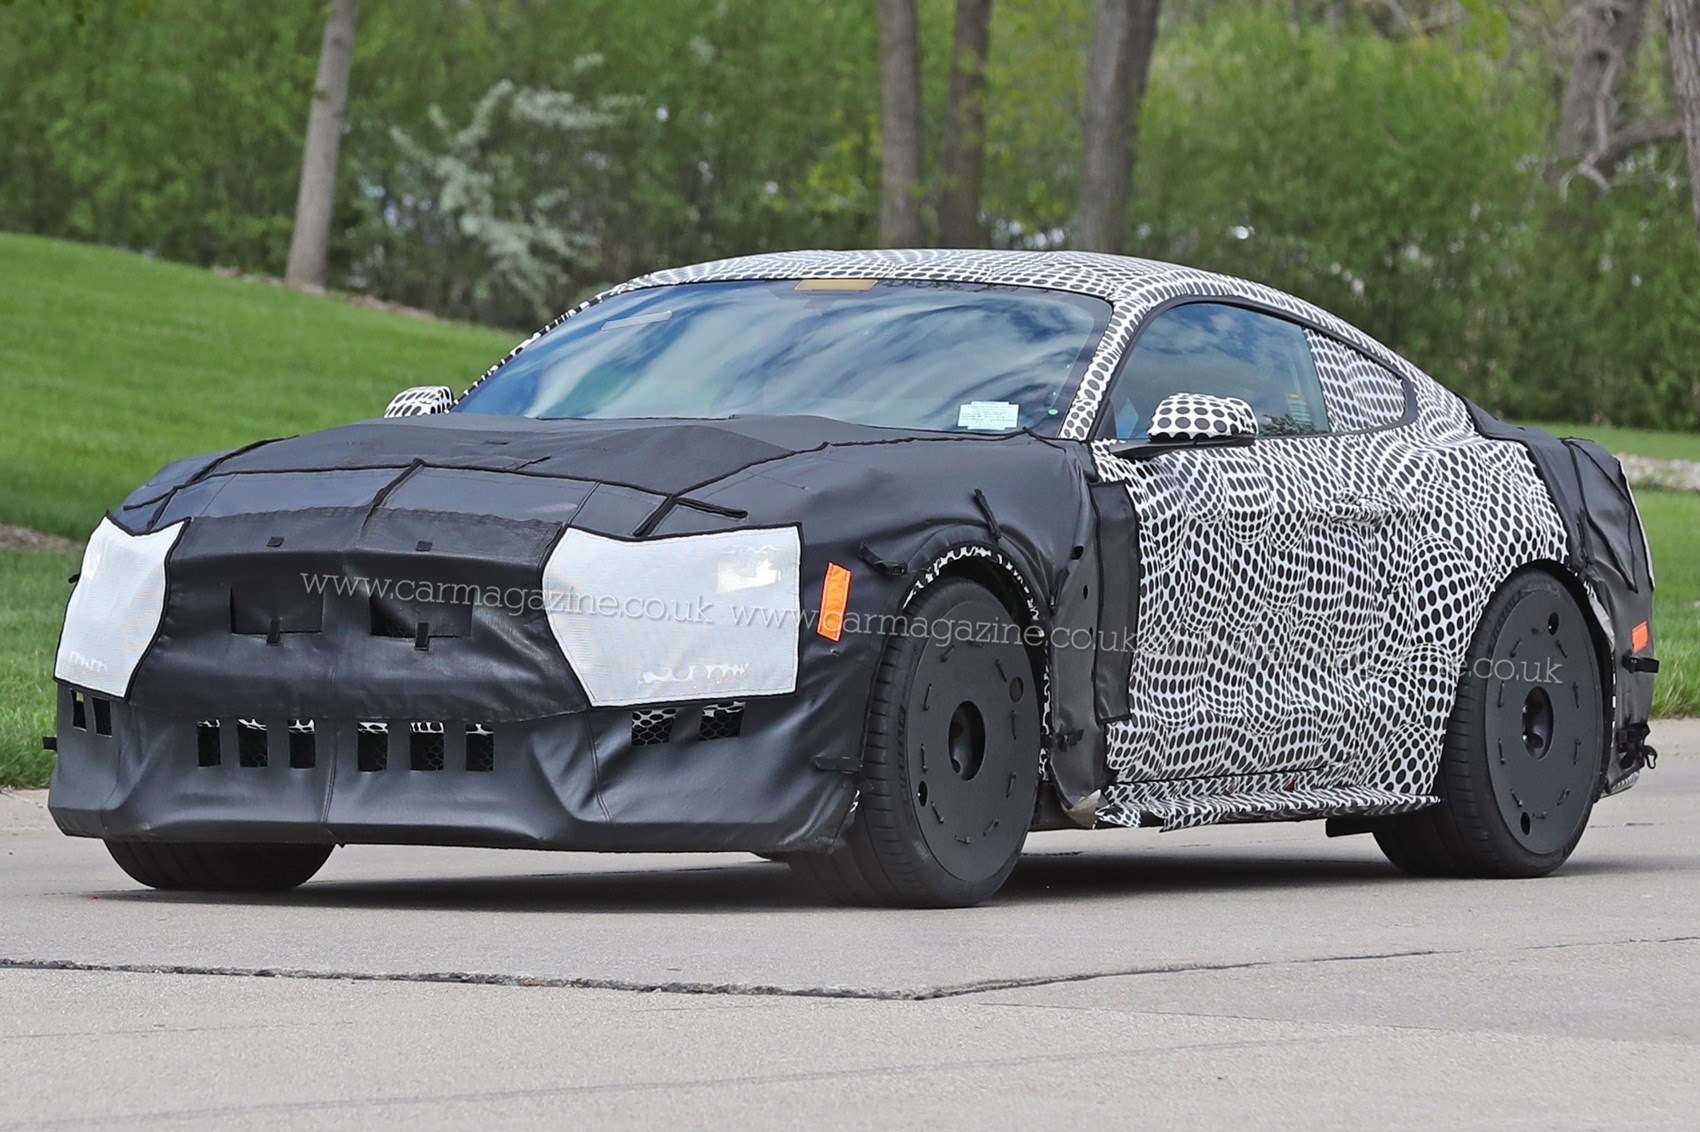 Cool cars 2016 ford mustang gt spy shoot pictures car interior - Ford Mustang Gt500 2018 Spy Shots And First Details